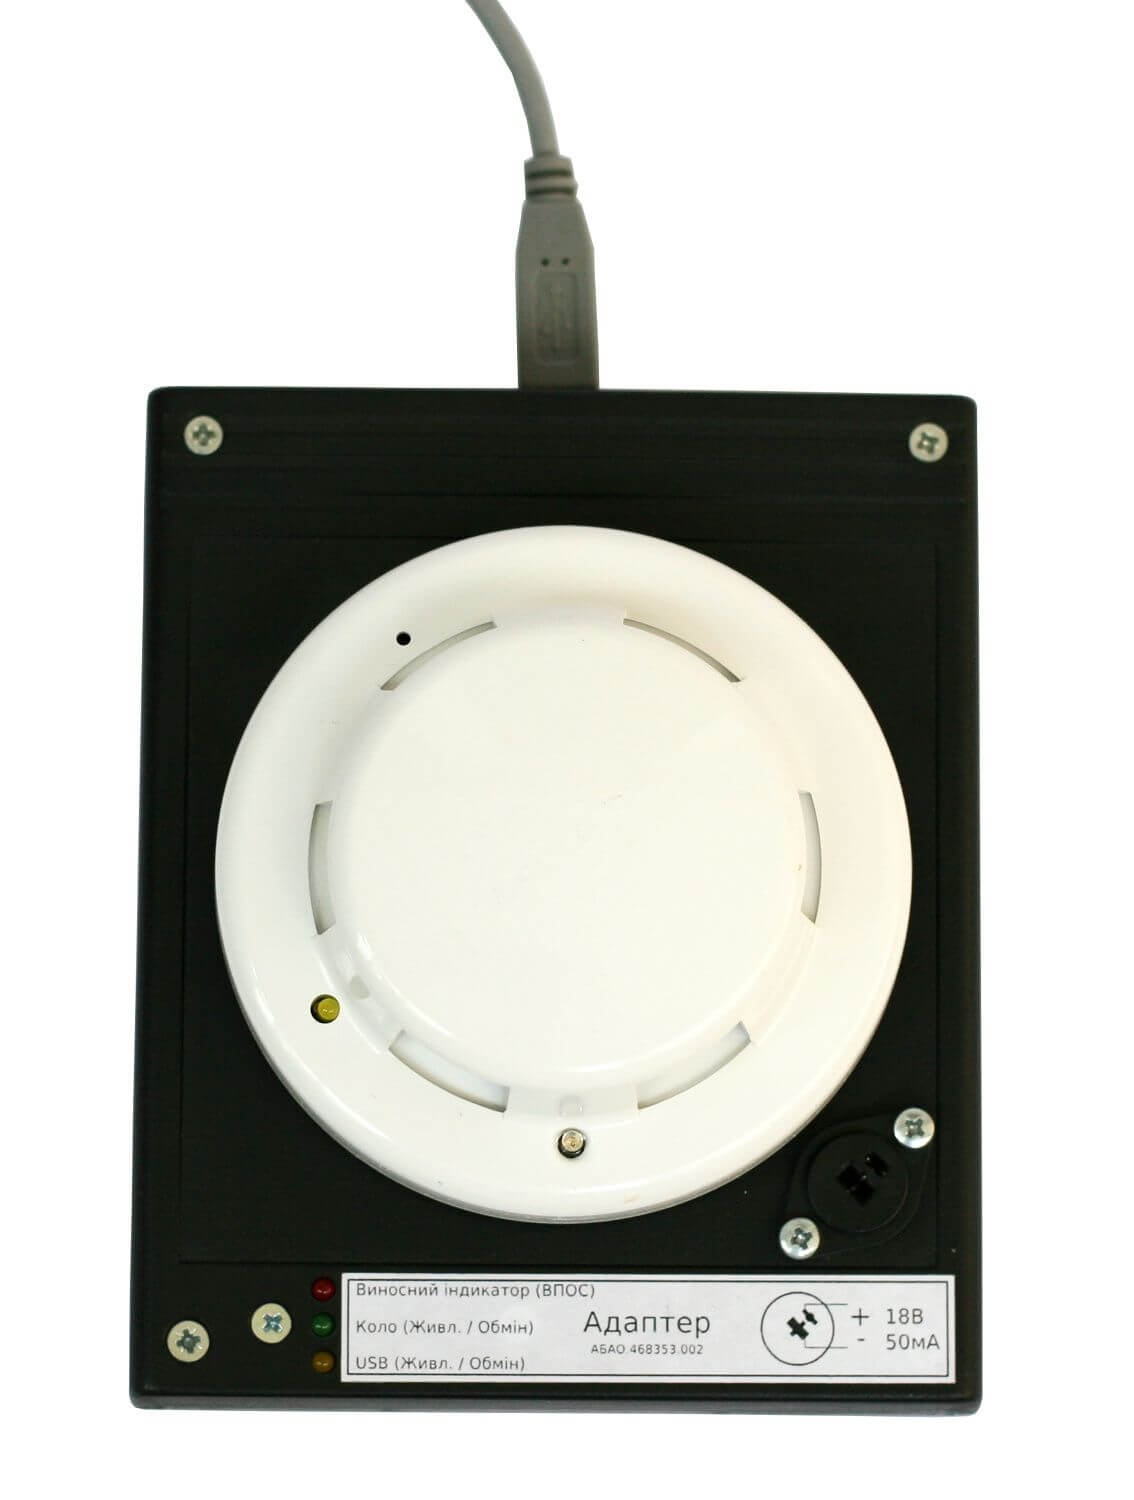 Device Programmer adapter module with an addressable smoke detector